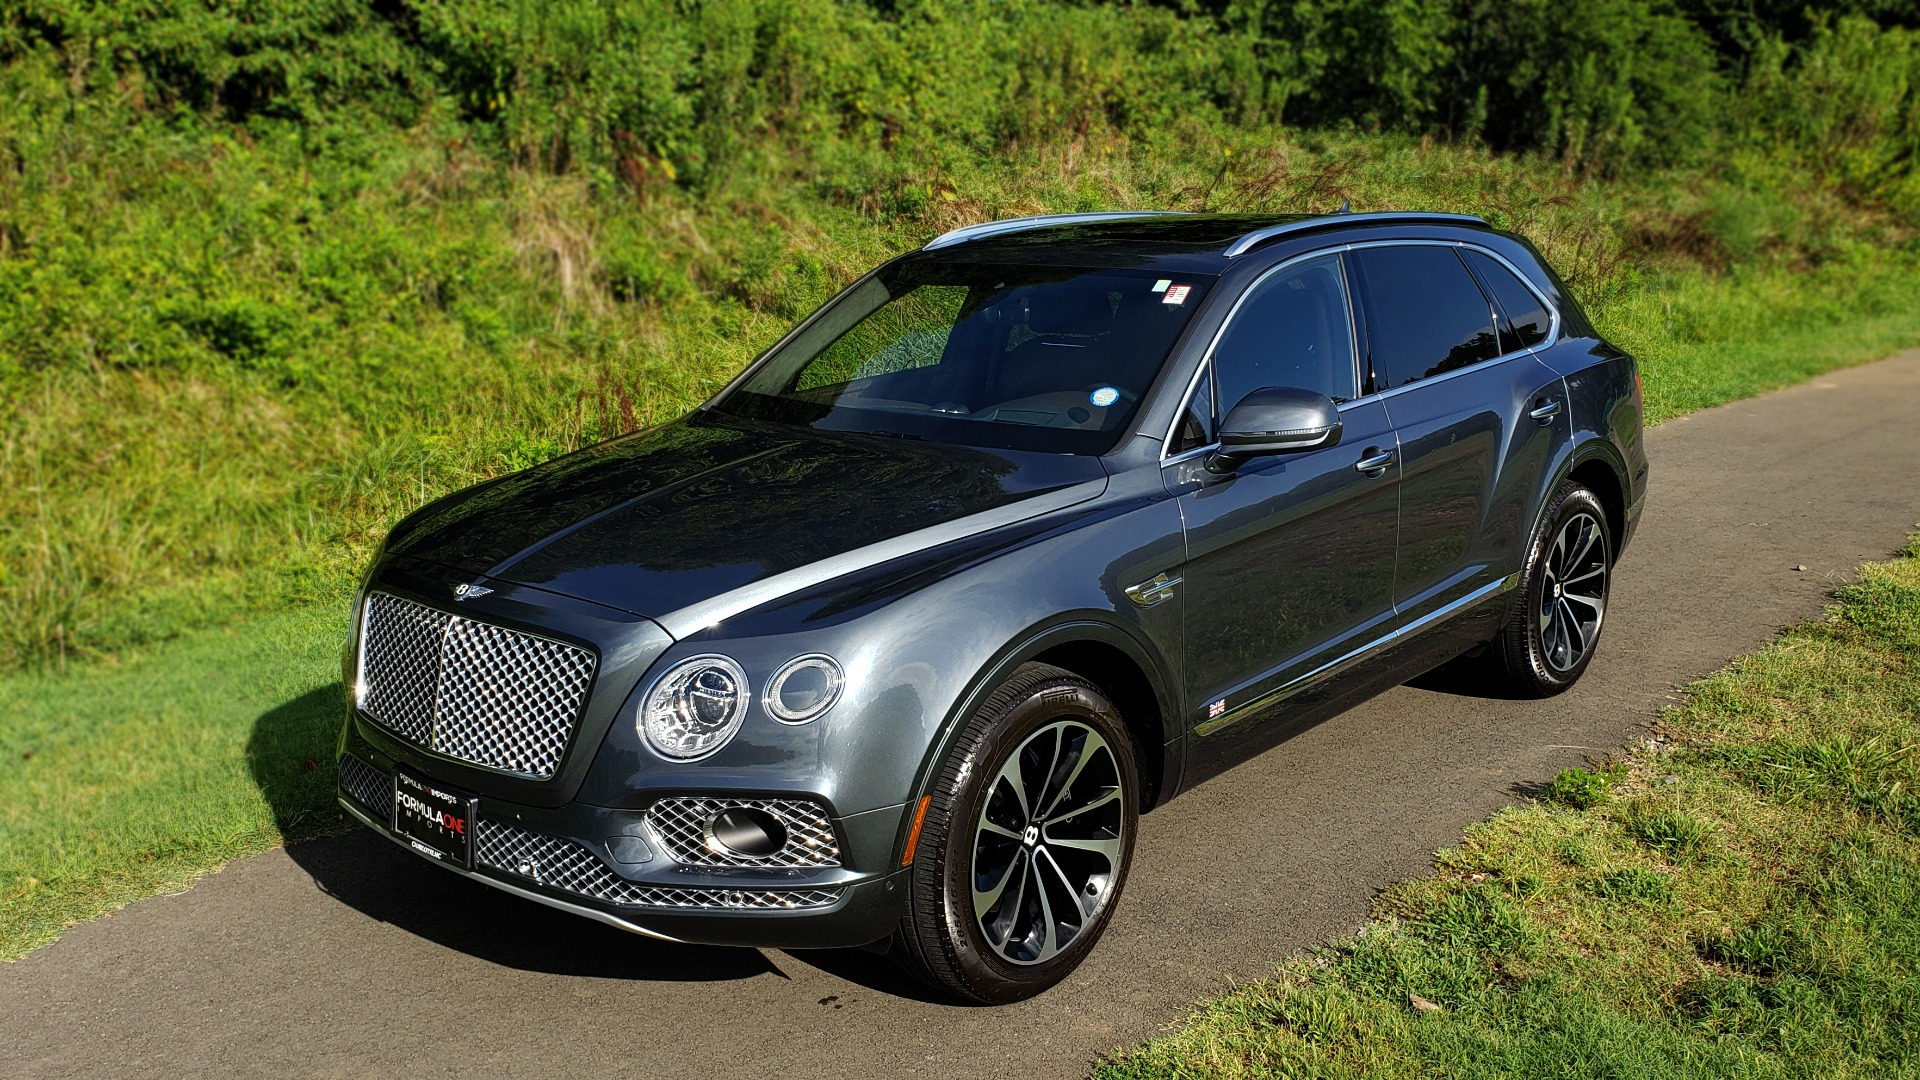 Used 2017 Bentley BENTAYGA W12 600HP / NAV / HTD SEATS / PANO-ROOF / REARVIEW / 21IN WHEELS for sale $149,995 at Formula Imports in Charlotte NC 28227 4